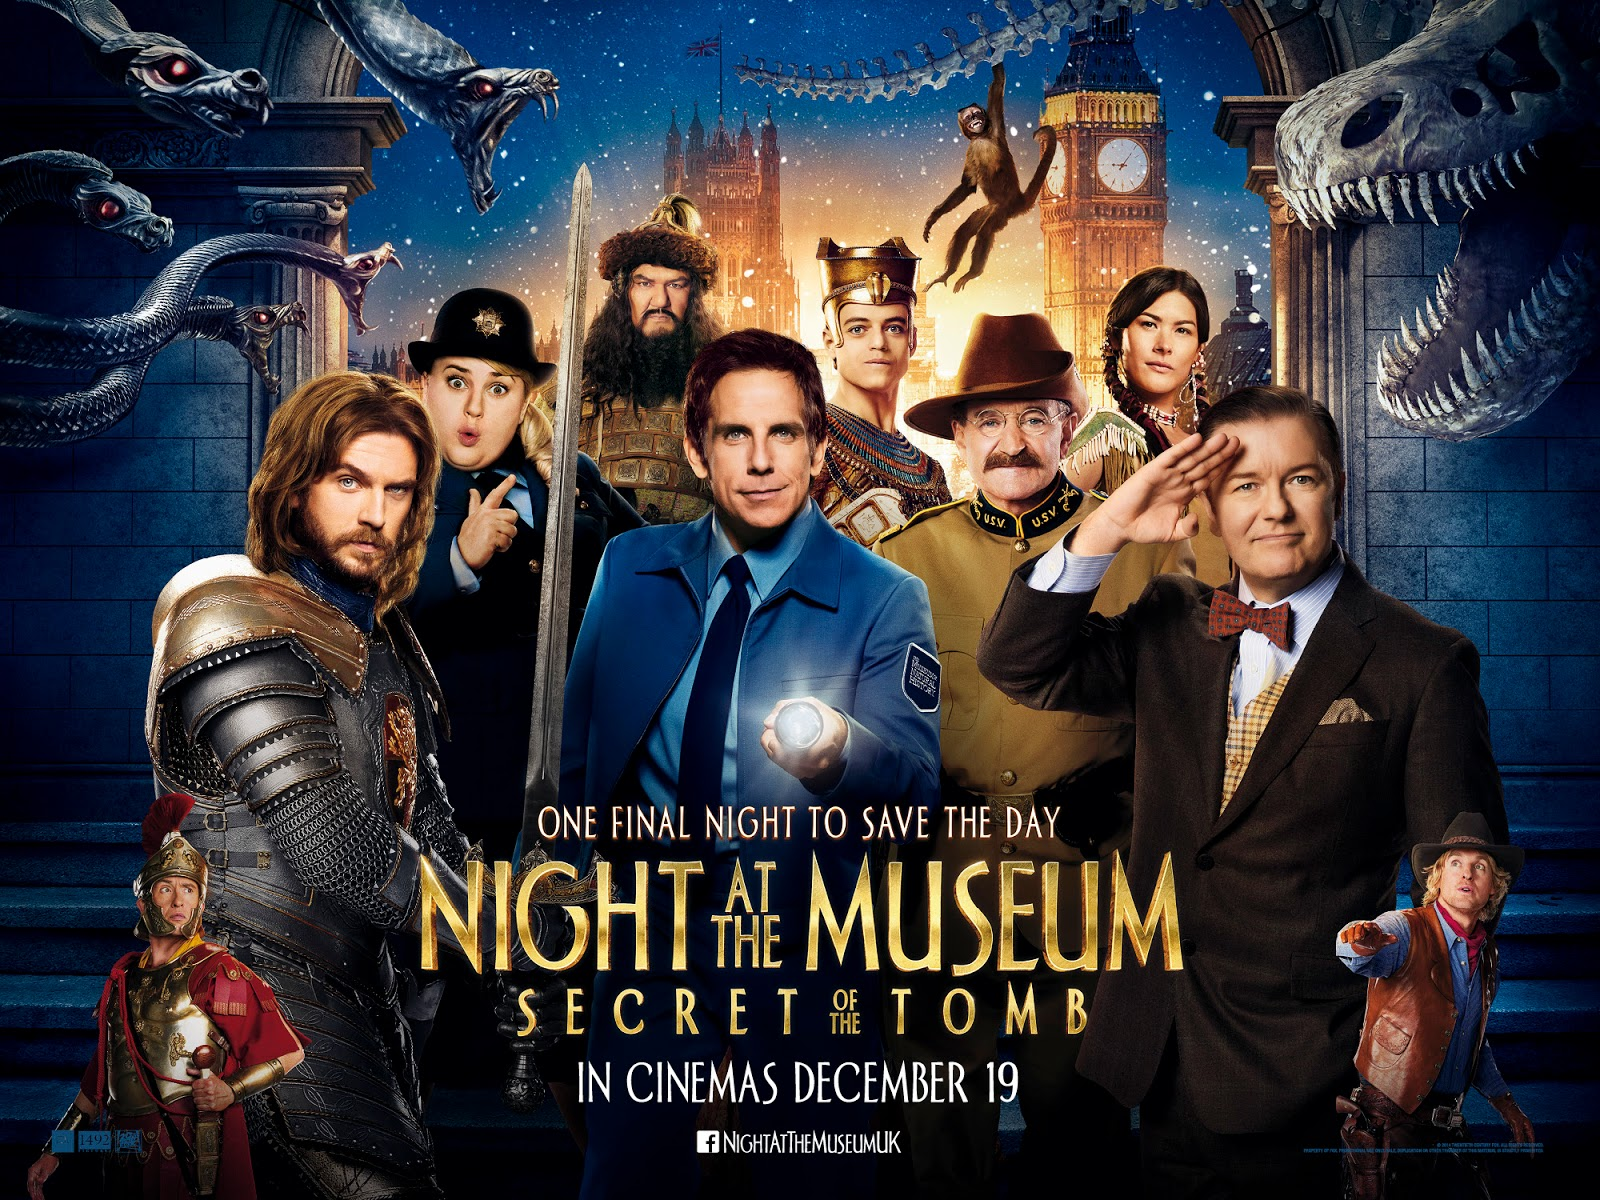 night at the museum secret of the tomb wallpapers - Night at the Museum Secret of the Tomb Wallpapers